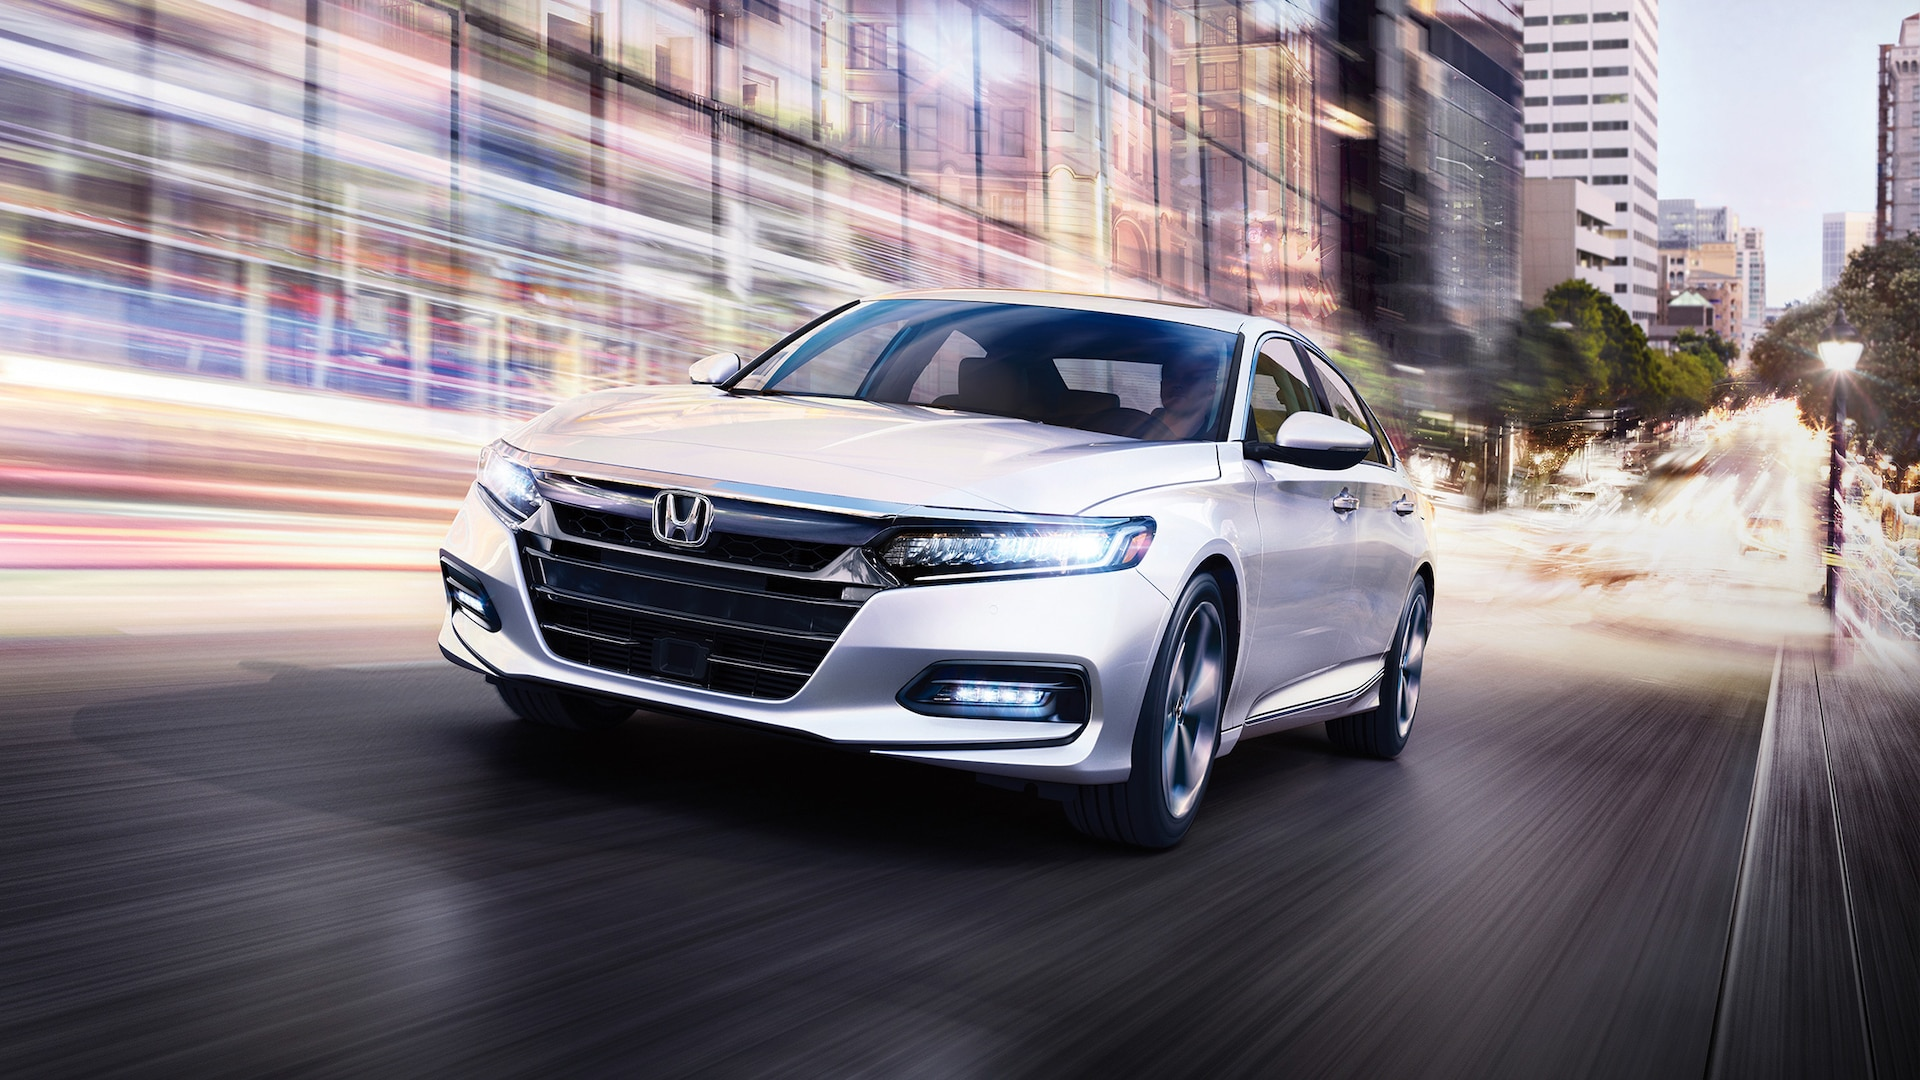 Front view of the 2020 Honda Accord Touring 2.0T in Platinum White Pearl, driving in city environment.